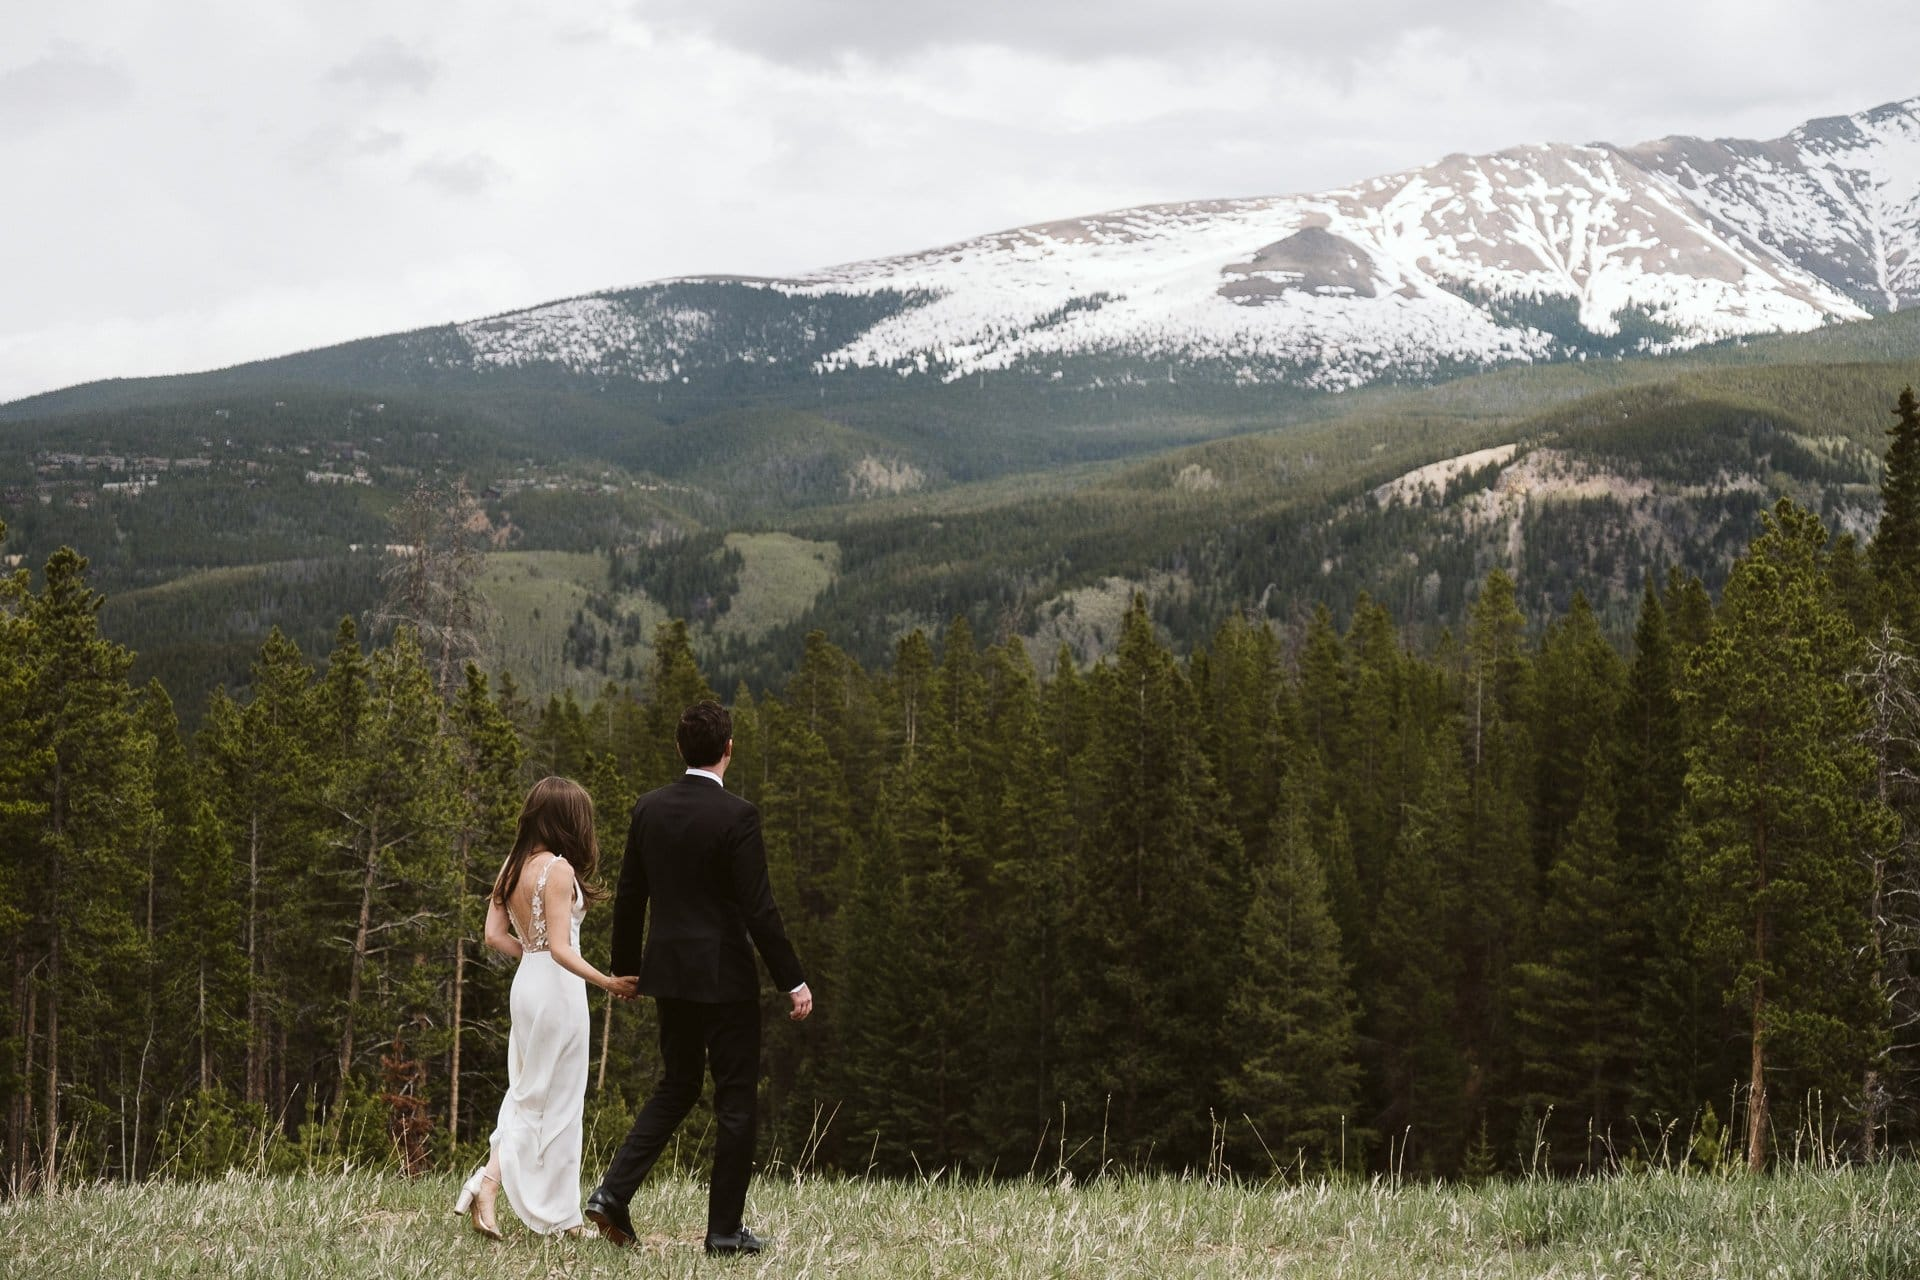 Bride and groom portraits at Ten Mile Station, Breckenridge ski resort wedding, Colorado mountain wedding photographer